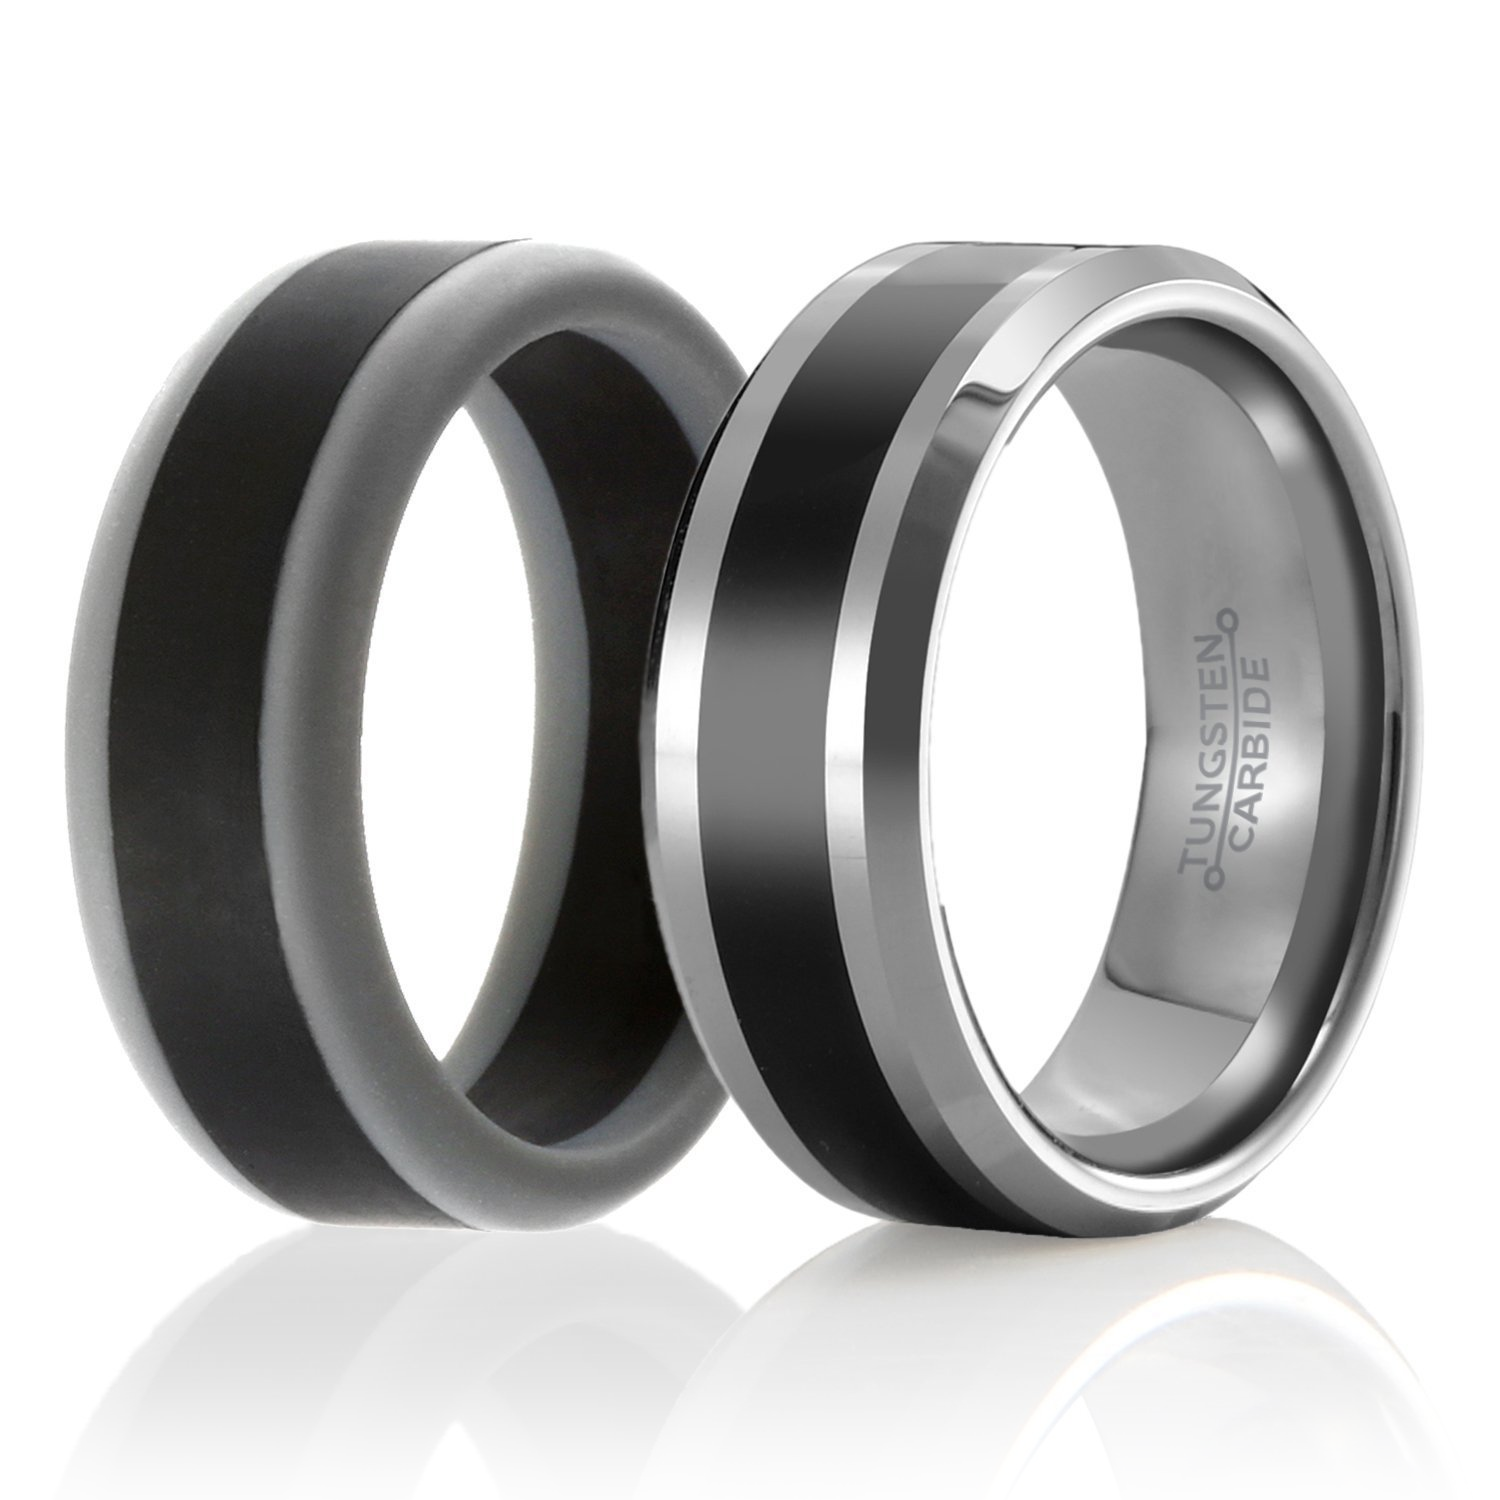 Silicone Wedding Ring.Men S Twin Set Of 2 1 Tungsten Wedding Ring And 1 Silicone